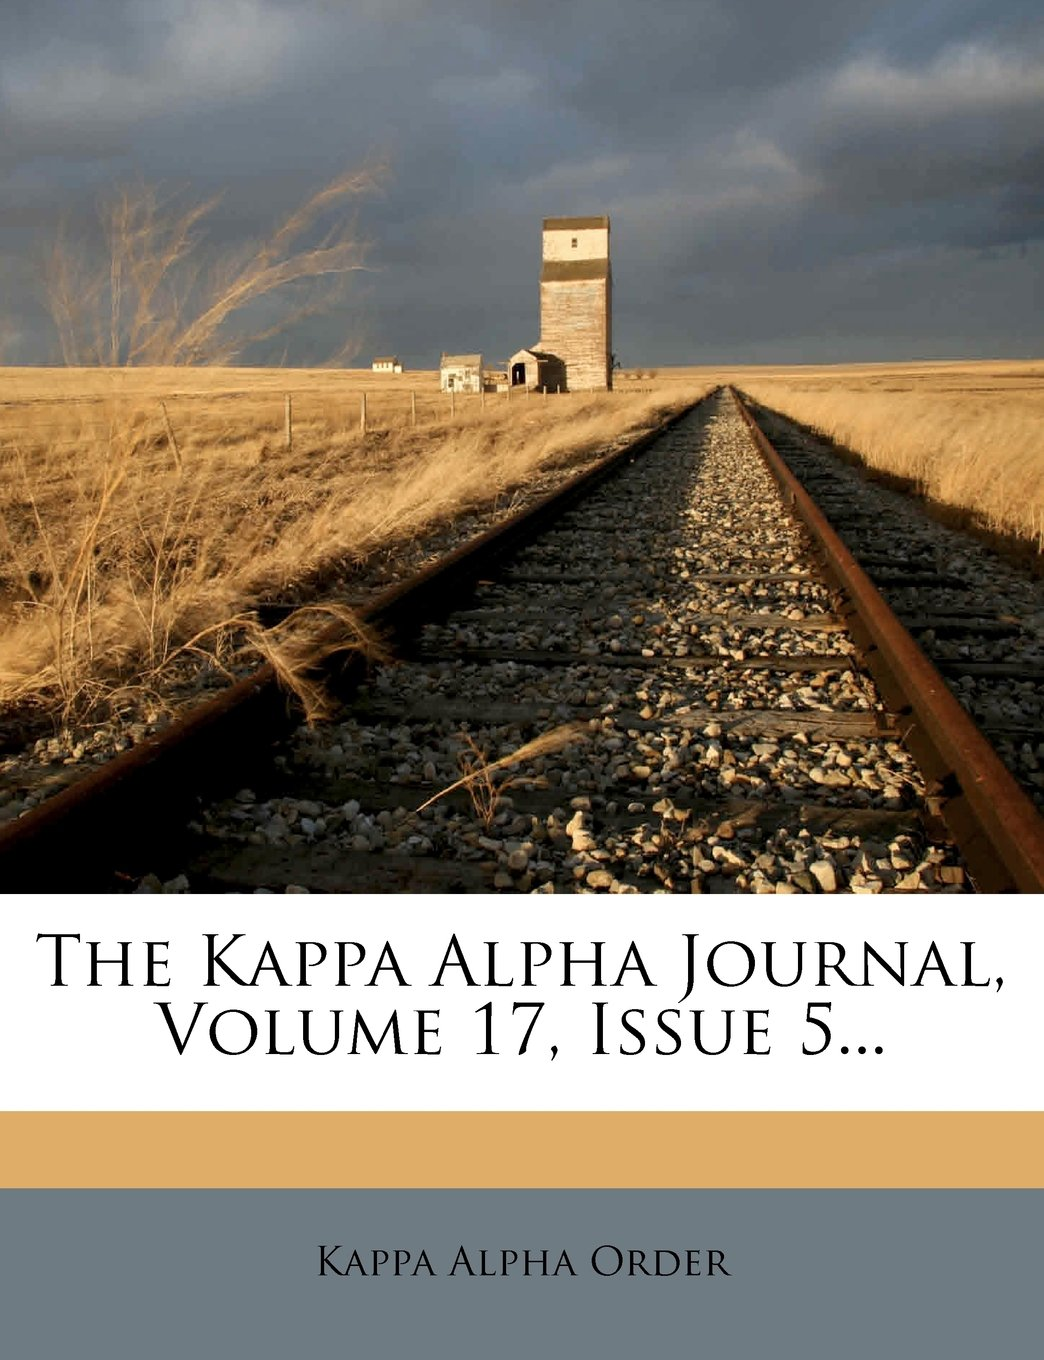 The Kappa Alpha Journal, Volume 17, Issue 5... PDF